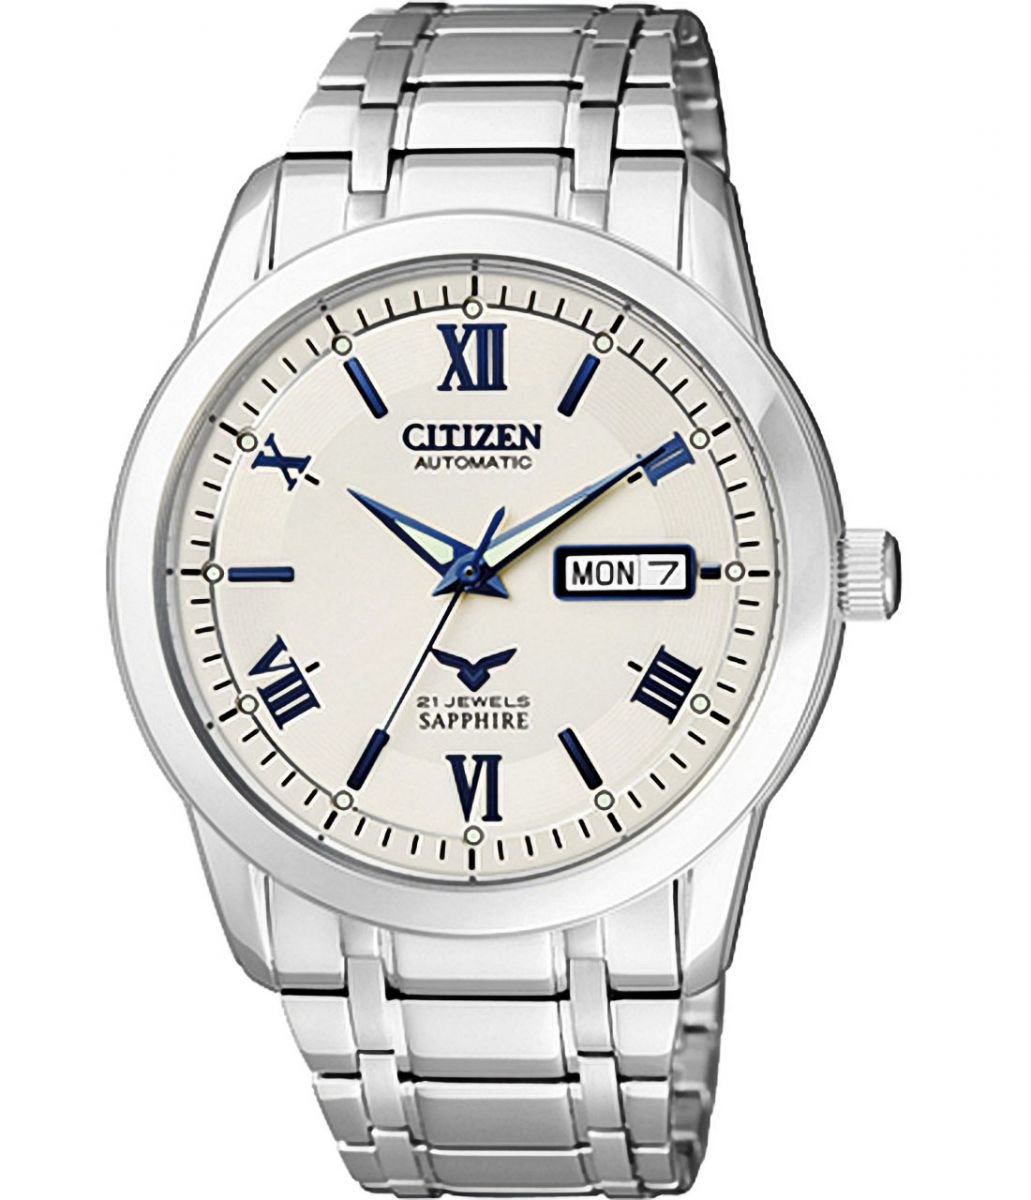 Đồng hồ nam cao cấp Citizen NH8290-59A Automatic